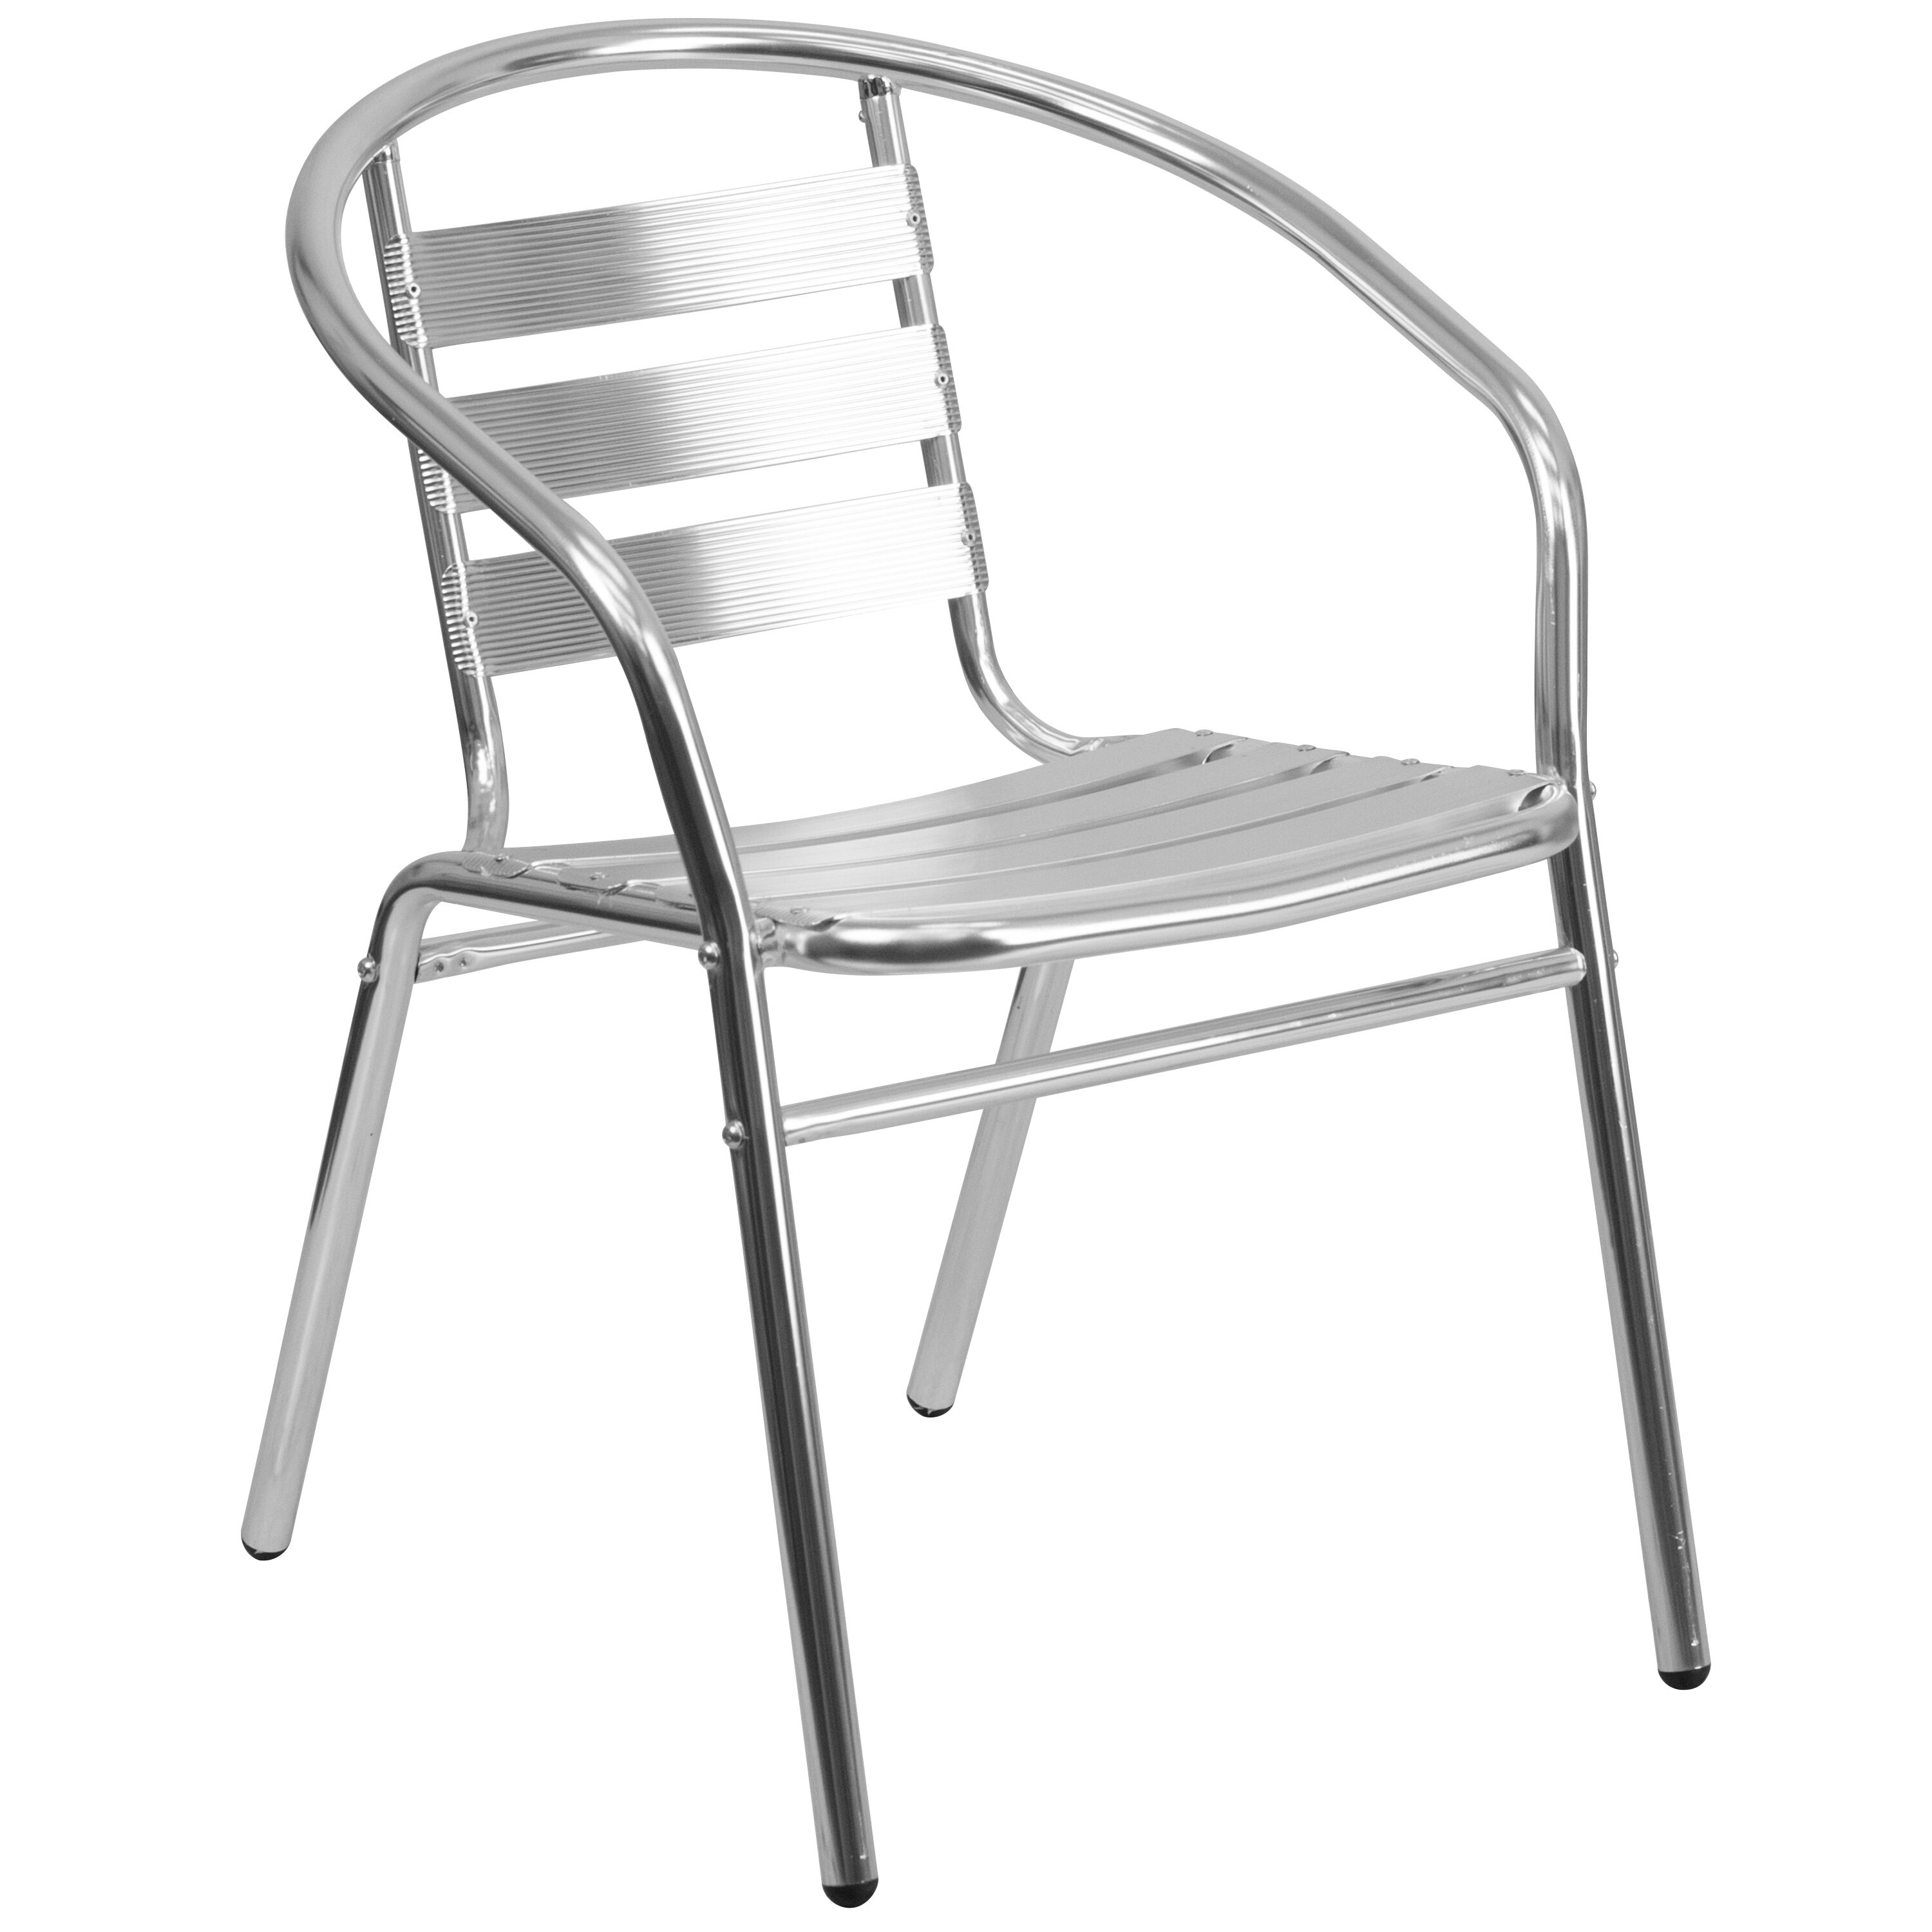 outdoor aluminum chairs baby lawn chair restaurantfurniture4less commercial indoor restaurant stack with triple slat back and arms